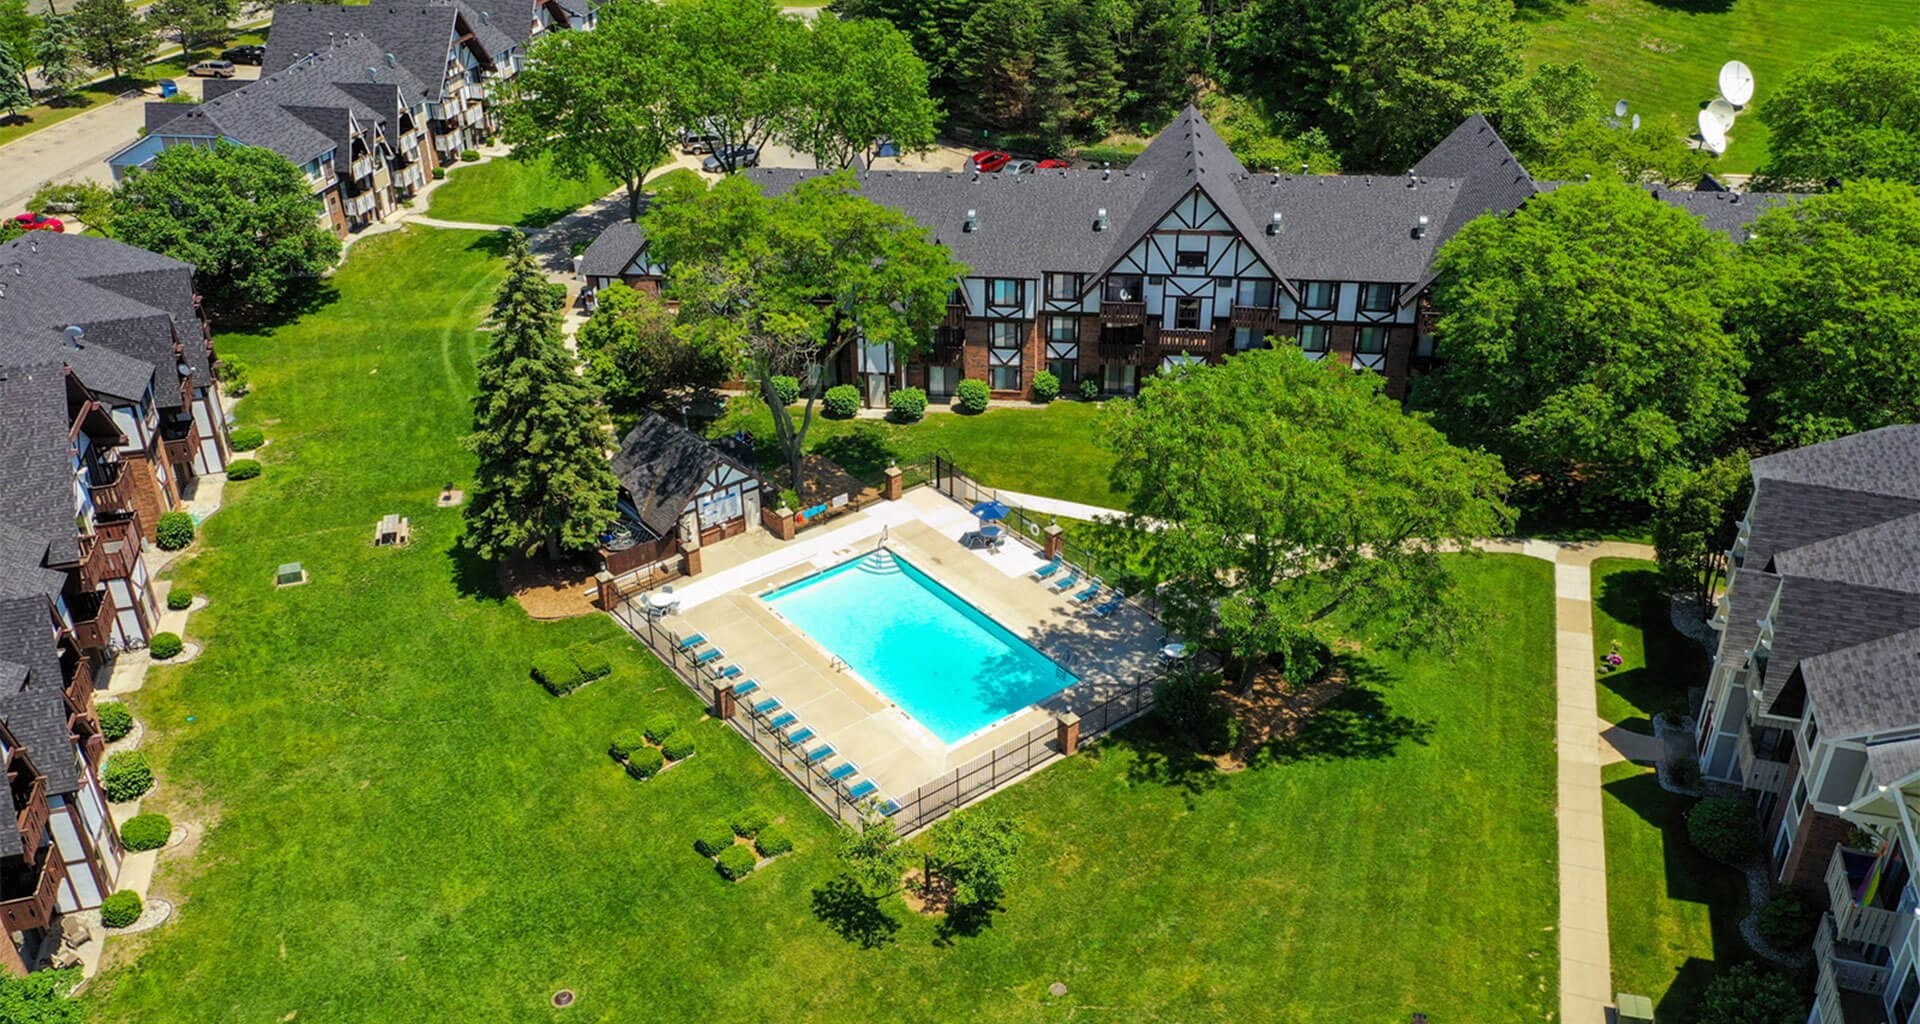 Top Pool View at Swiss Valley Apartments, Michigan